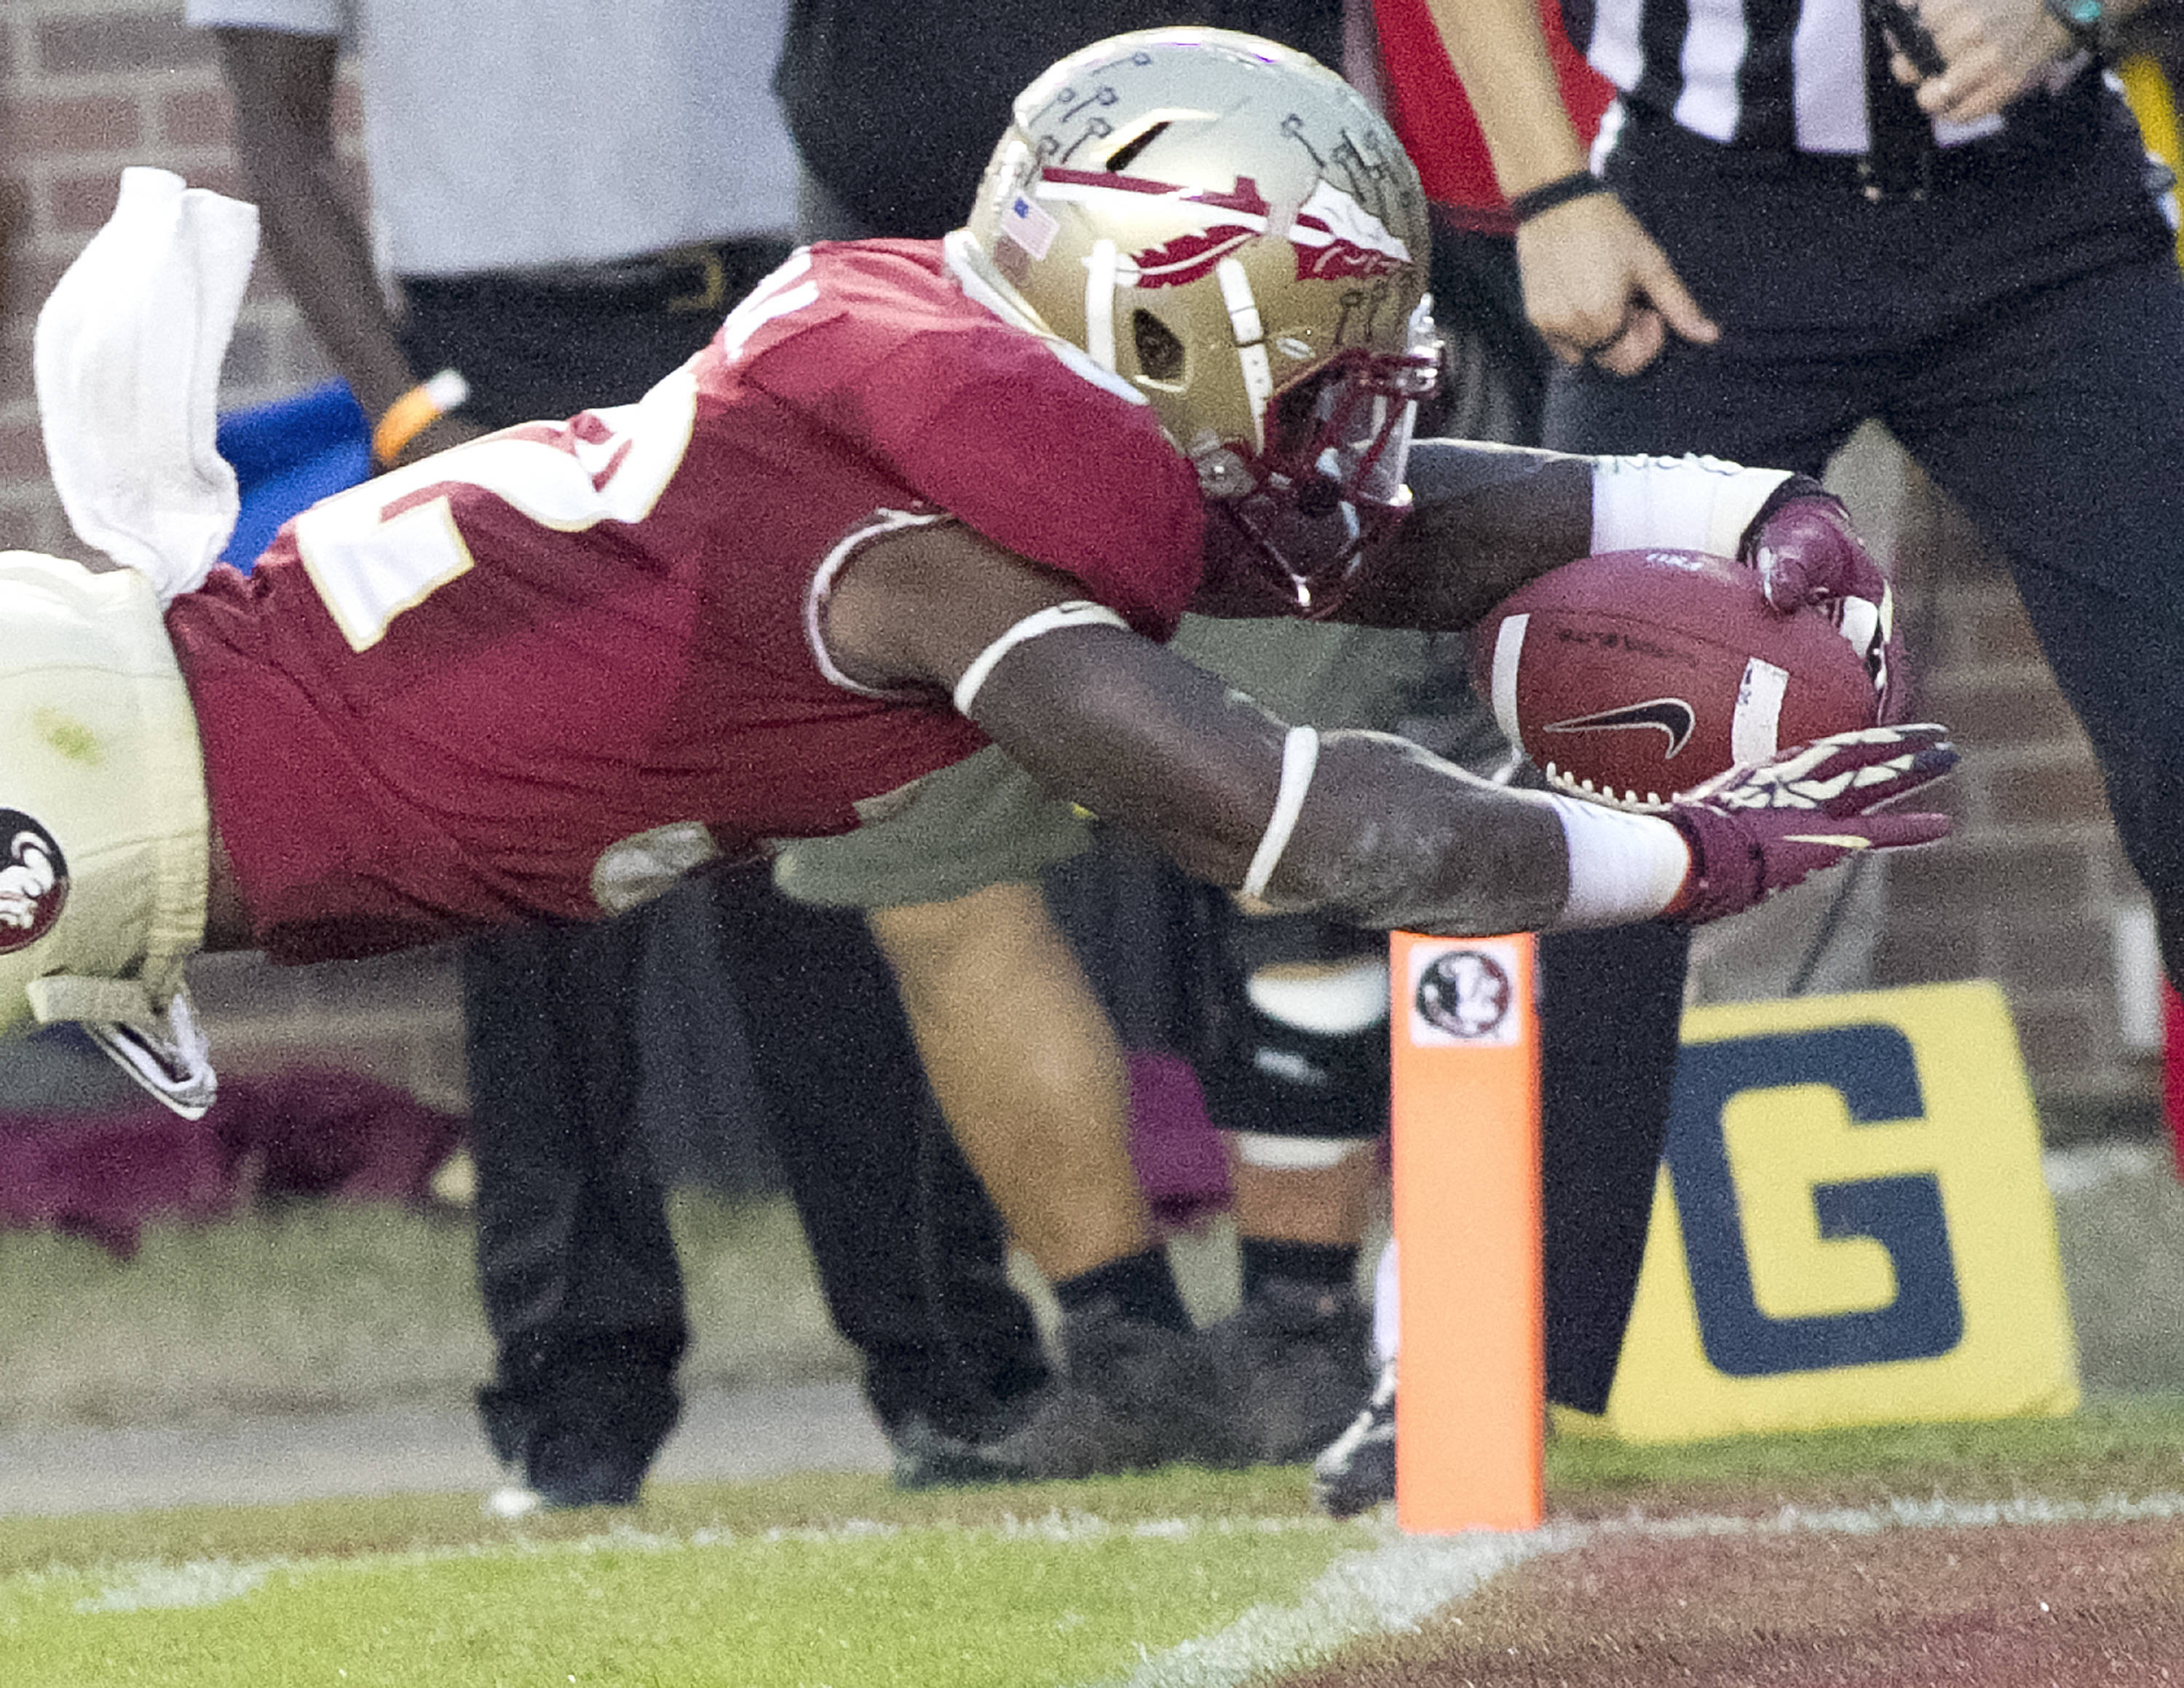 James Wilder, Jr. (32) diving for a touchdown, FSU vs Syracuse, 11-16-13, (Photo by Steve Musco)